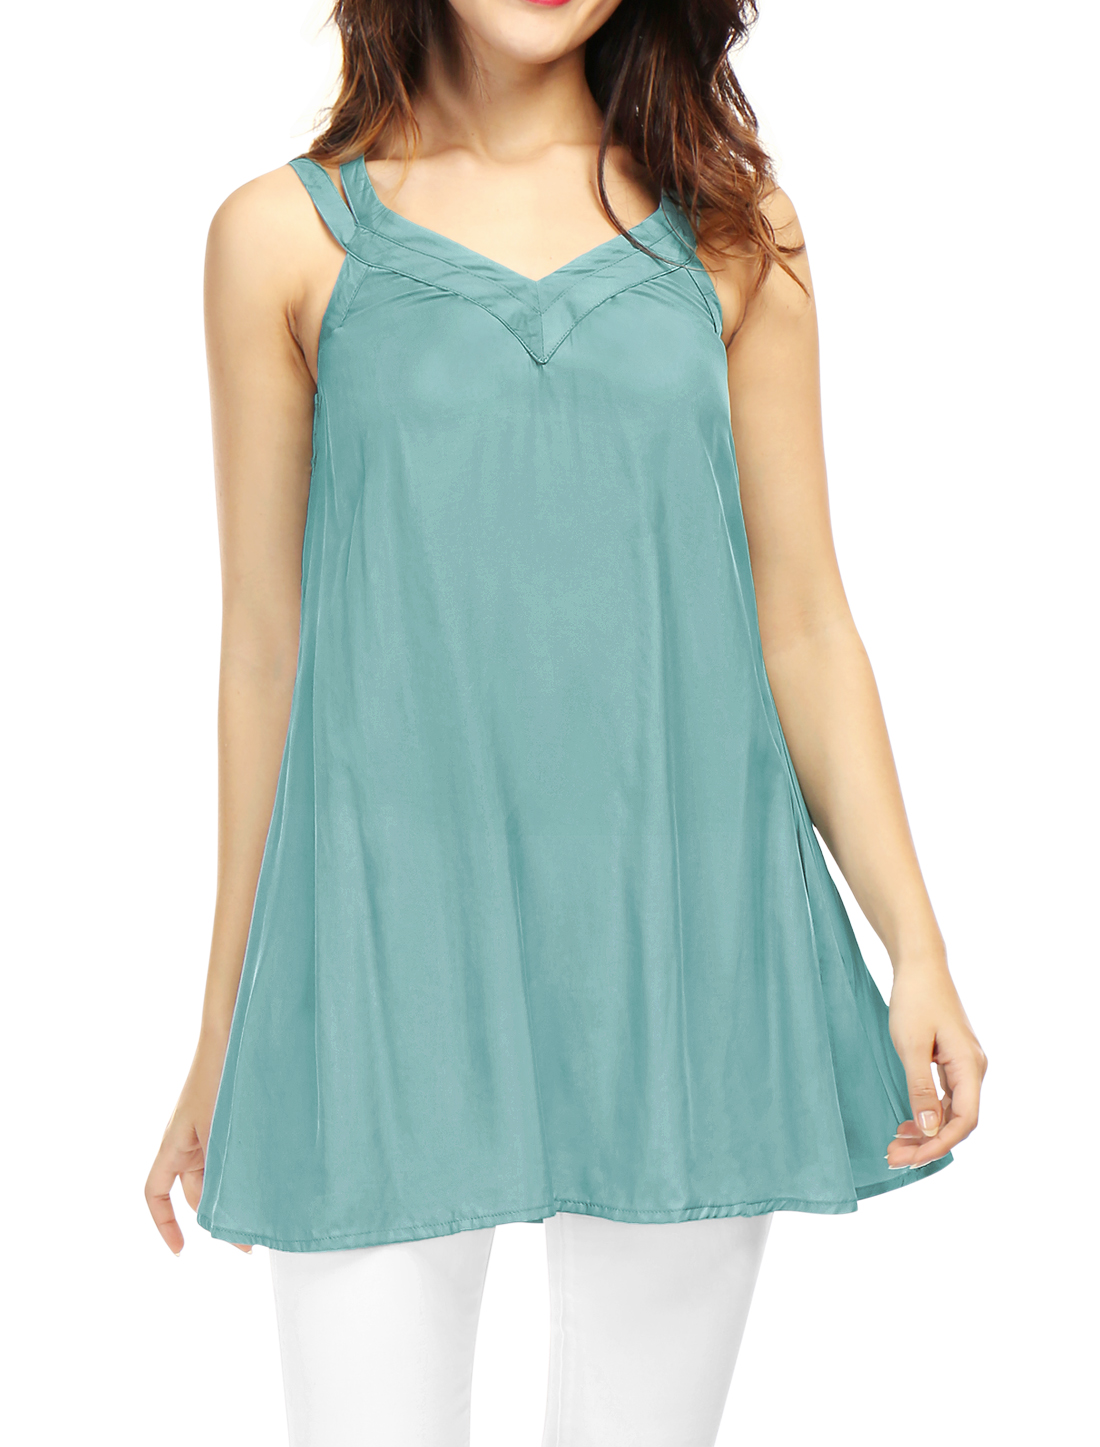 Women Sleeveless V Neckline Strappy Back Swing Tunic Top Green S